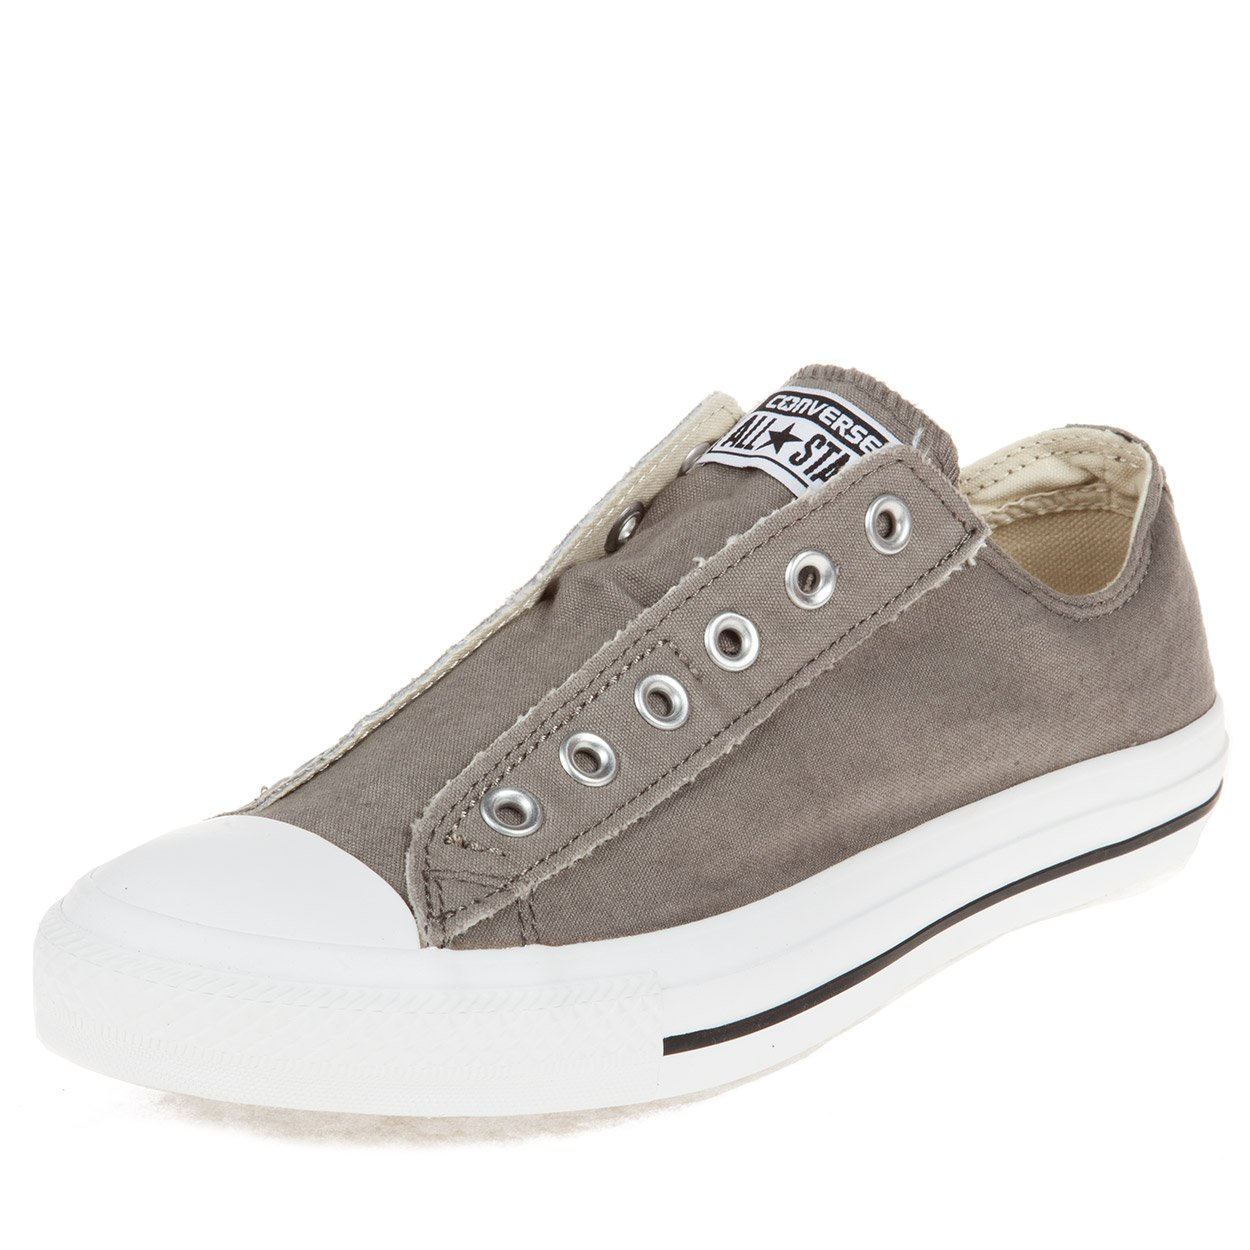 2fa0e32ec36d3e Galleon - Converse Chuck Taylor All-Star Charcoal Orange Slip-on Shoes  (1X841)